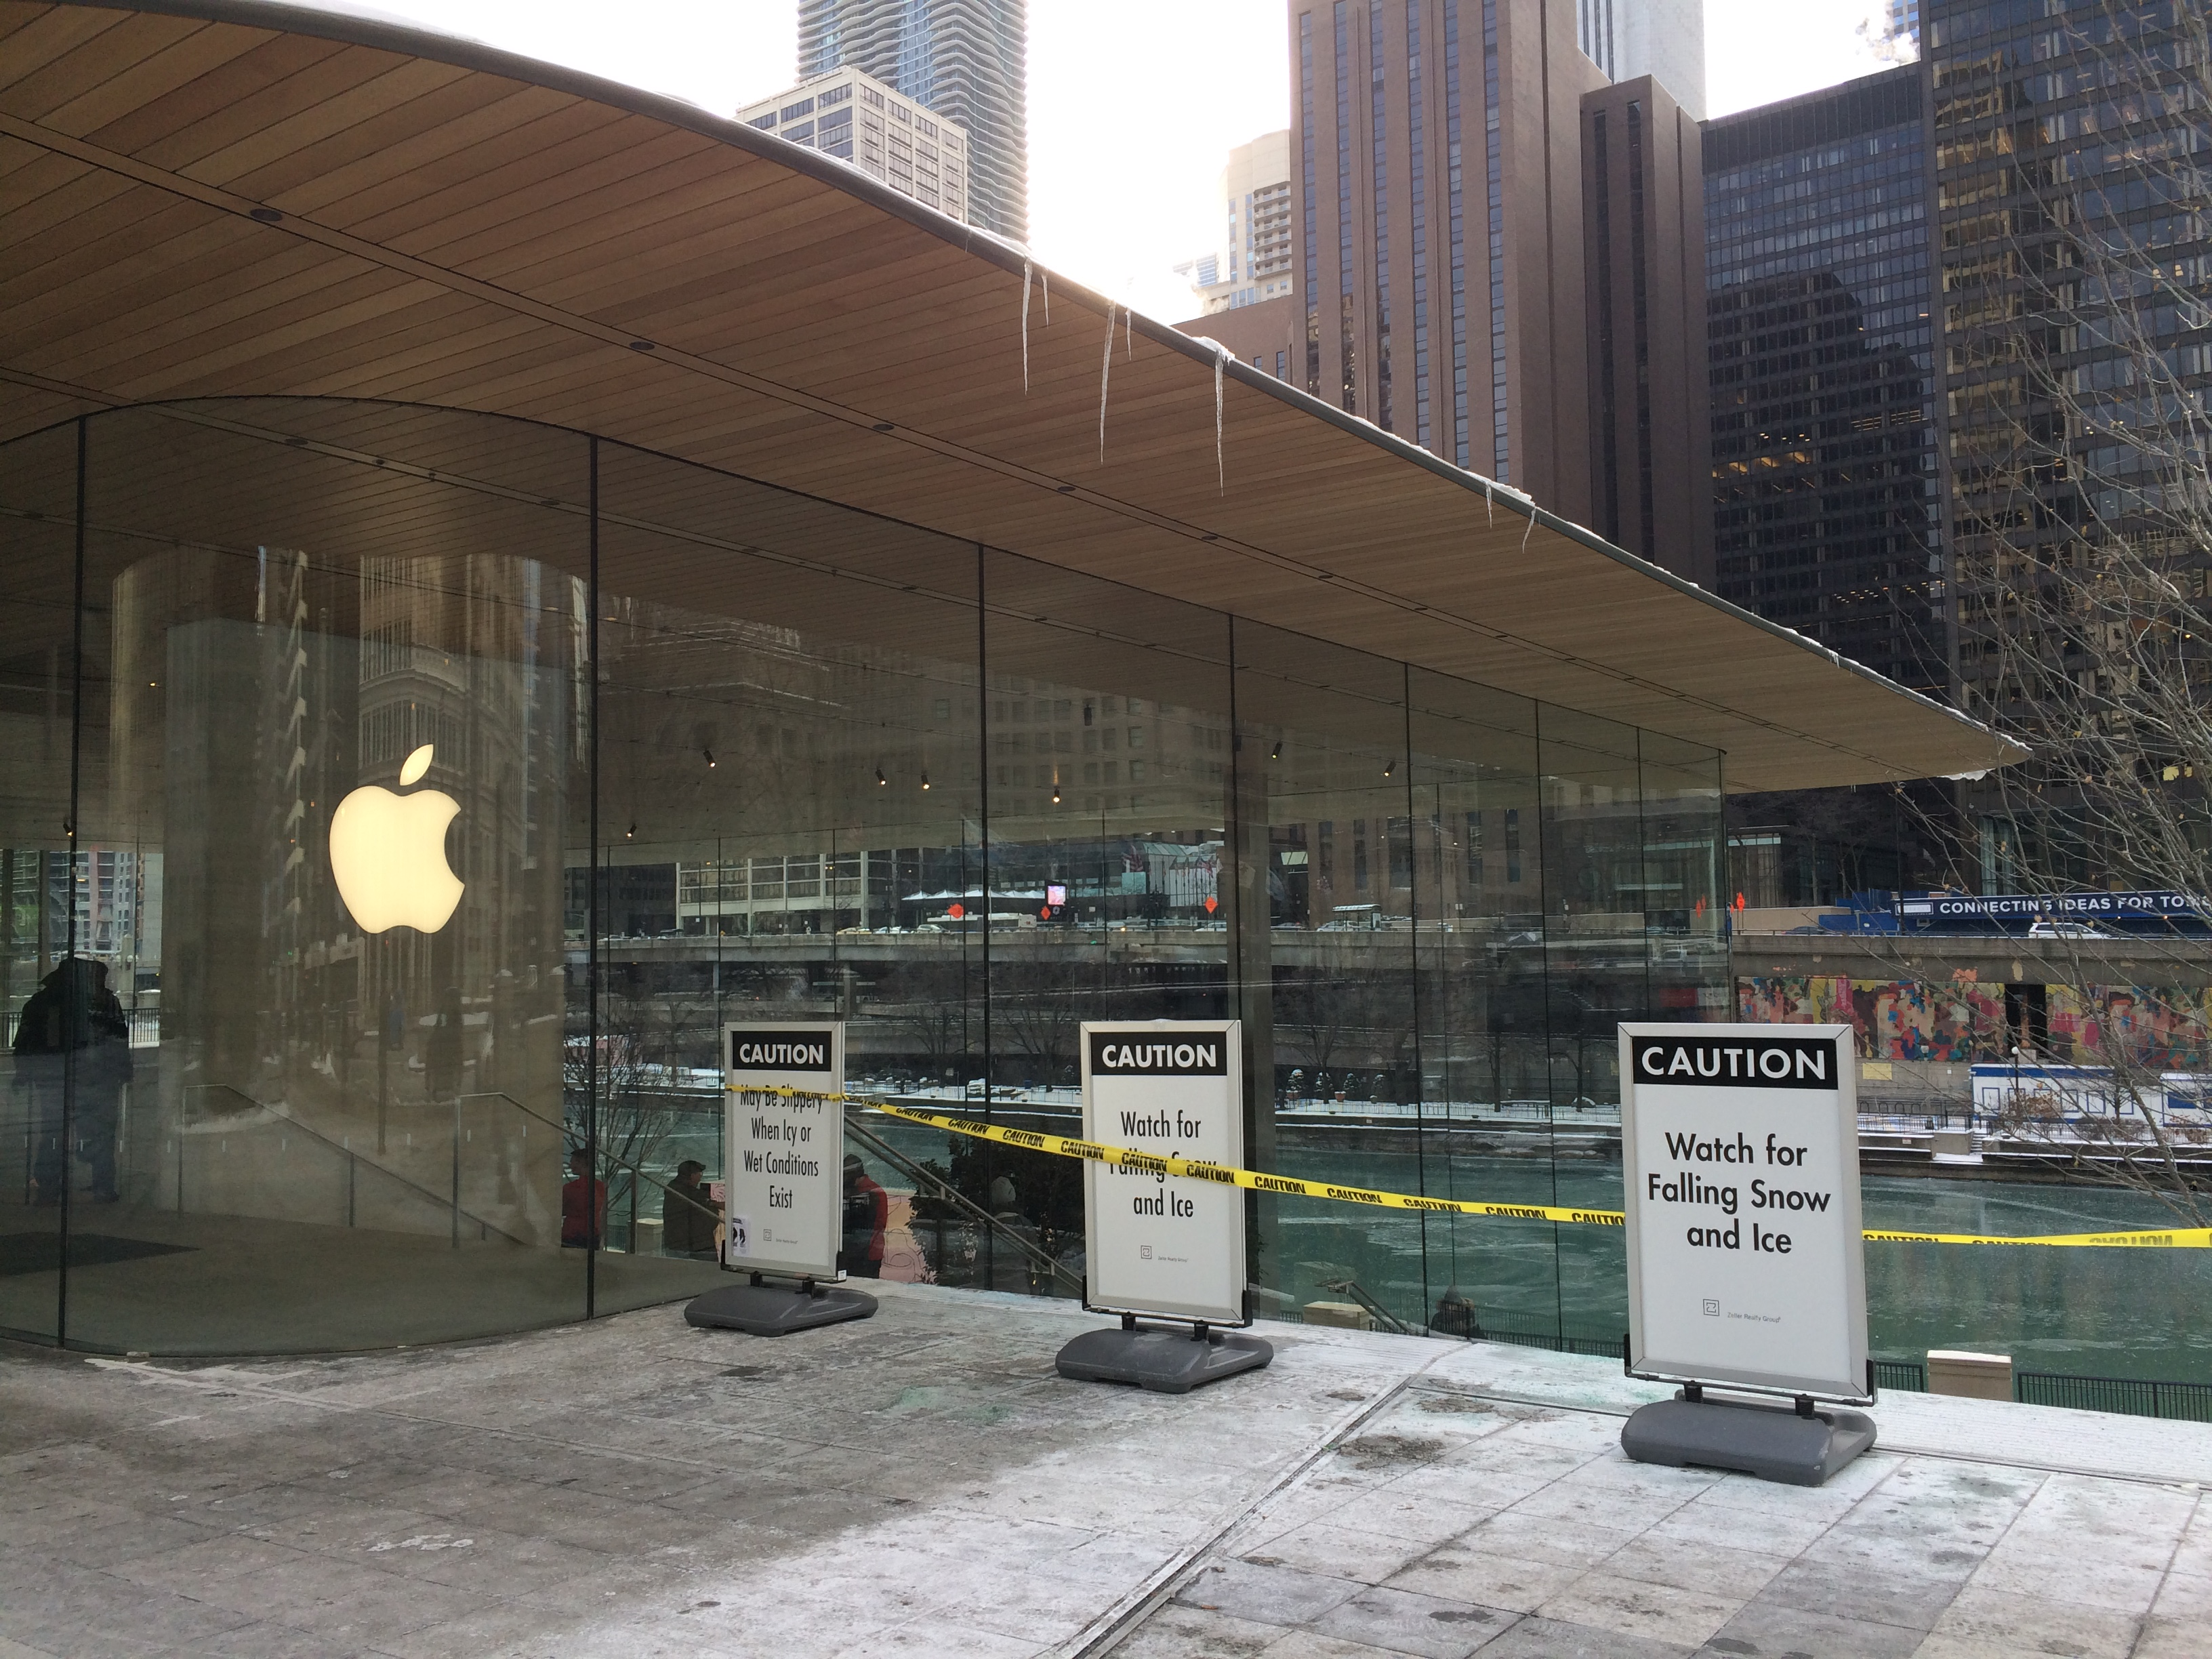 Apple Store Chicago: roof with icicles